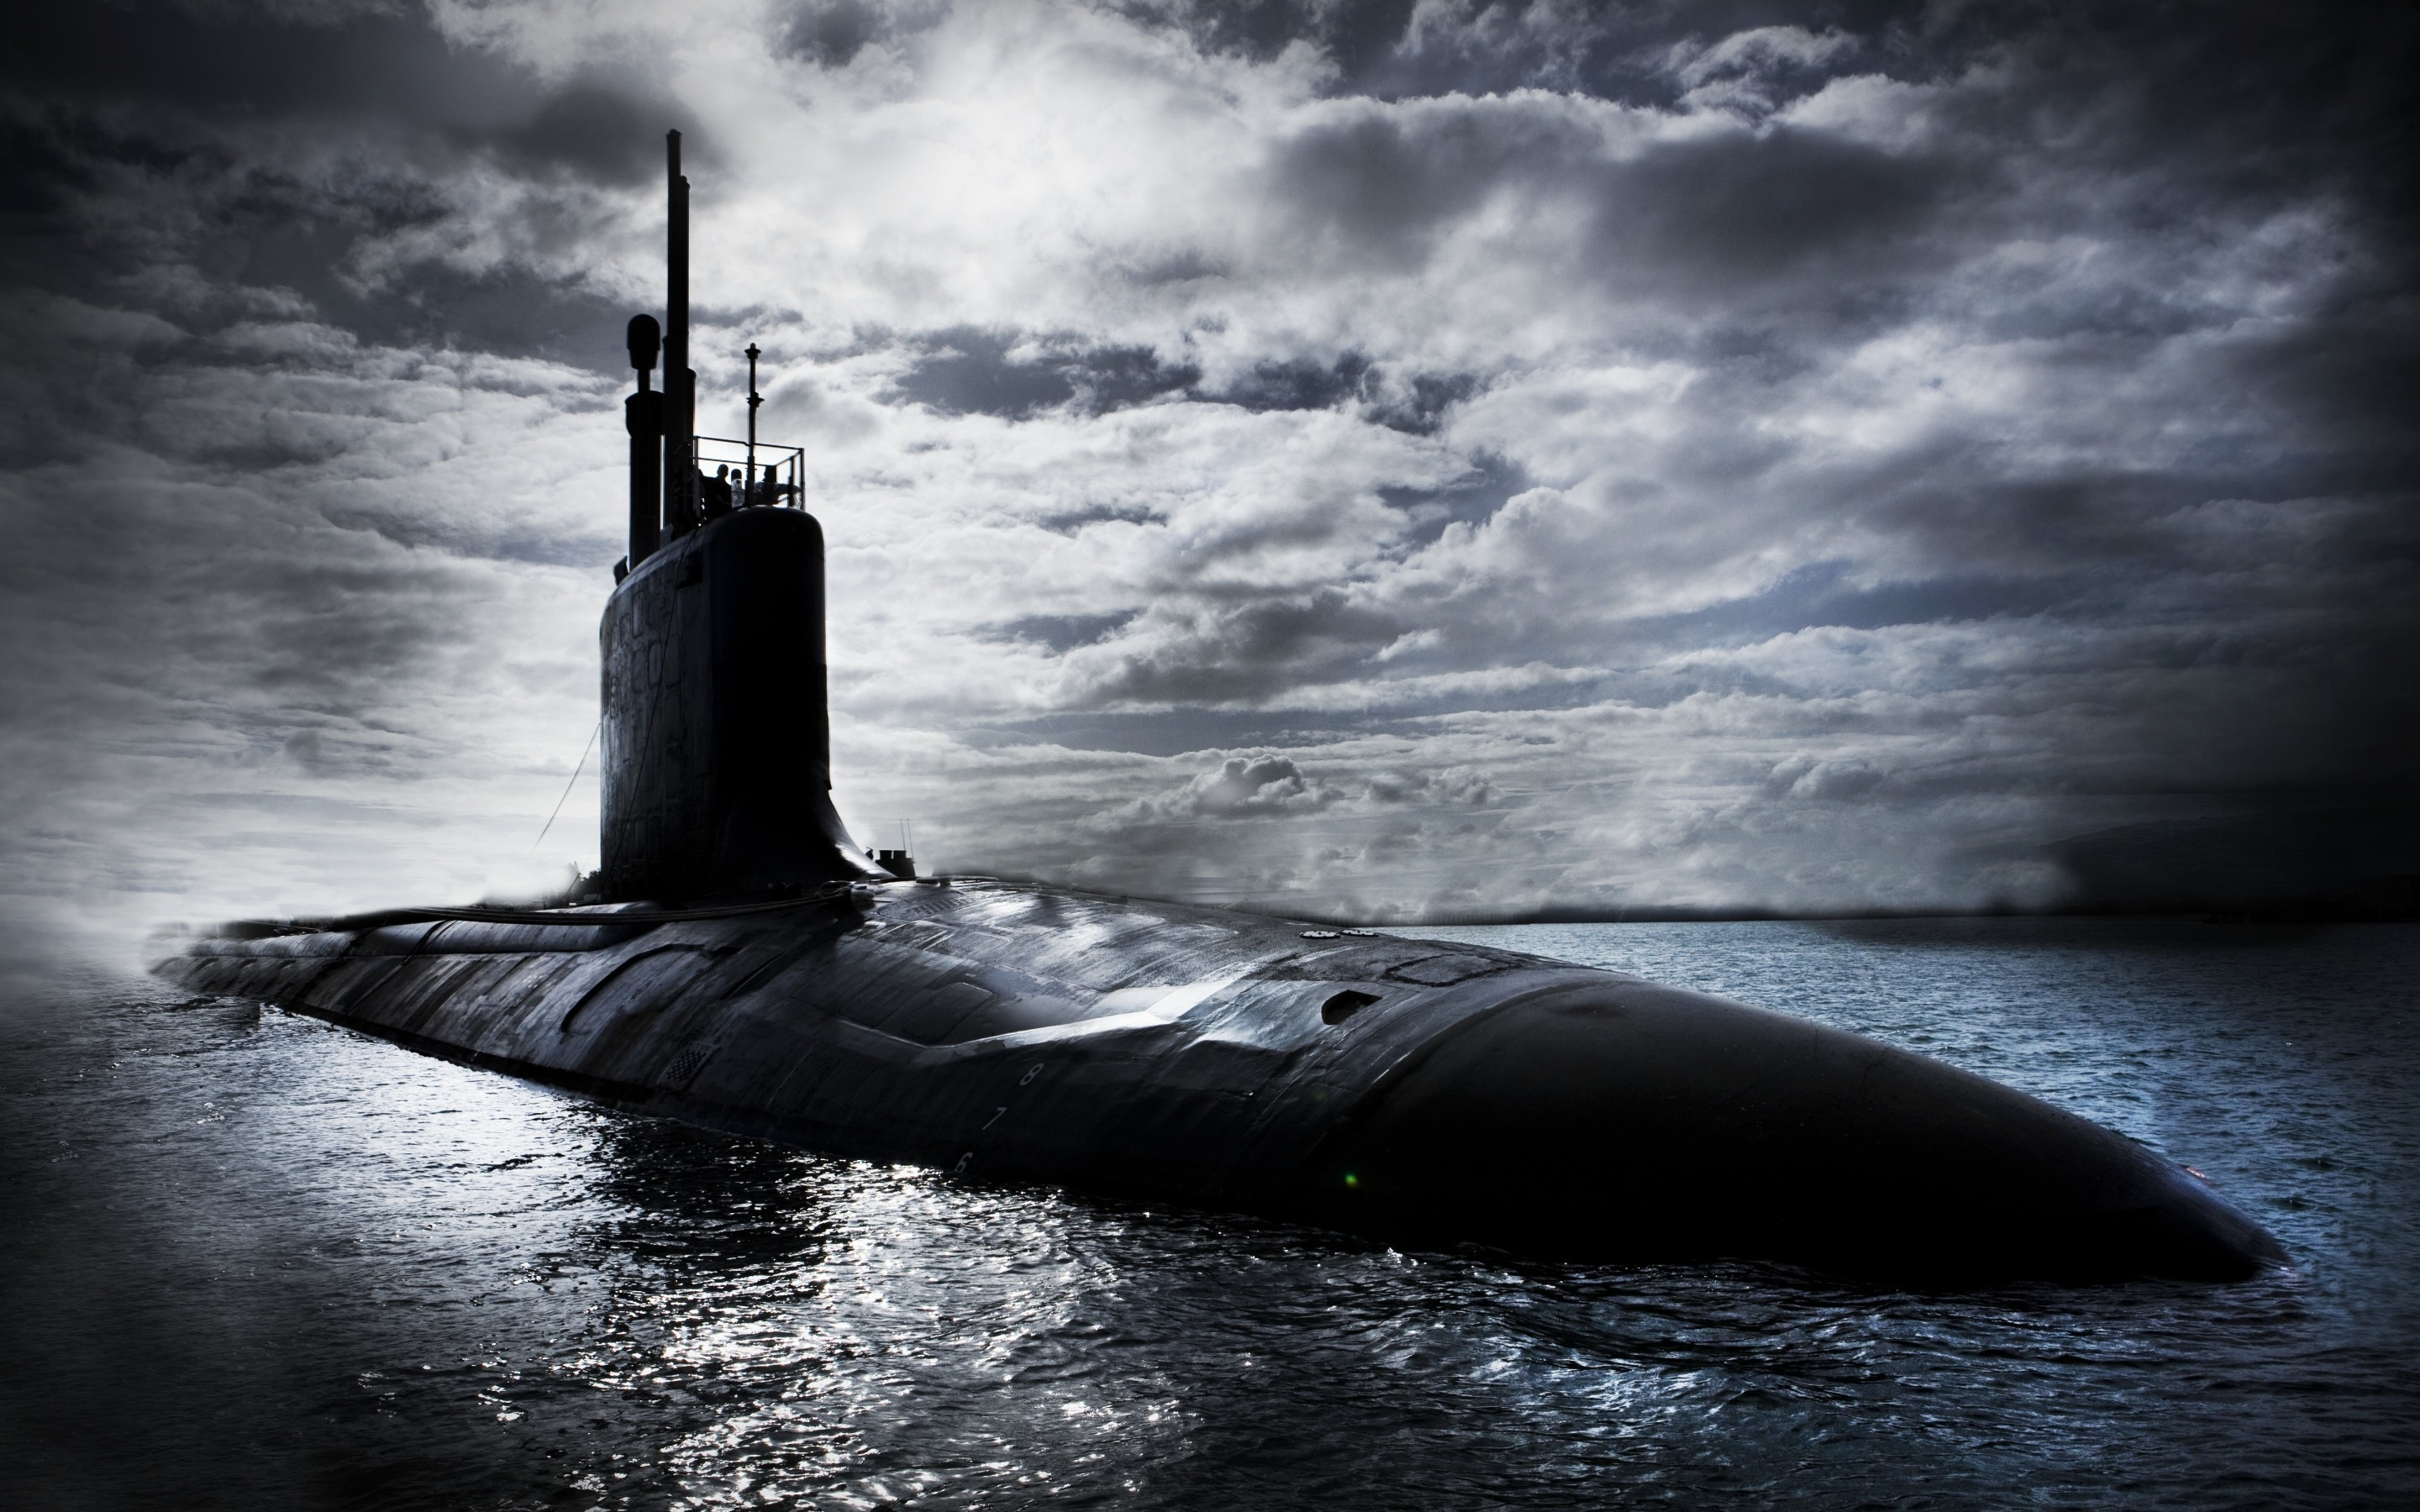 submarine hd wallpaper - wallpaperfx